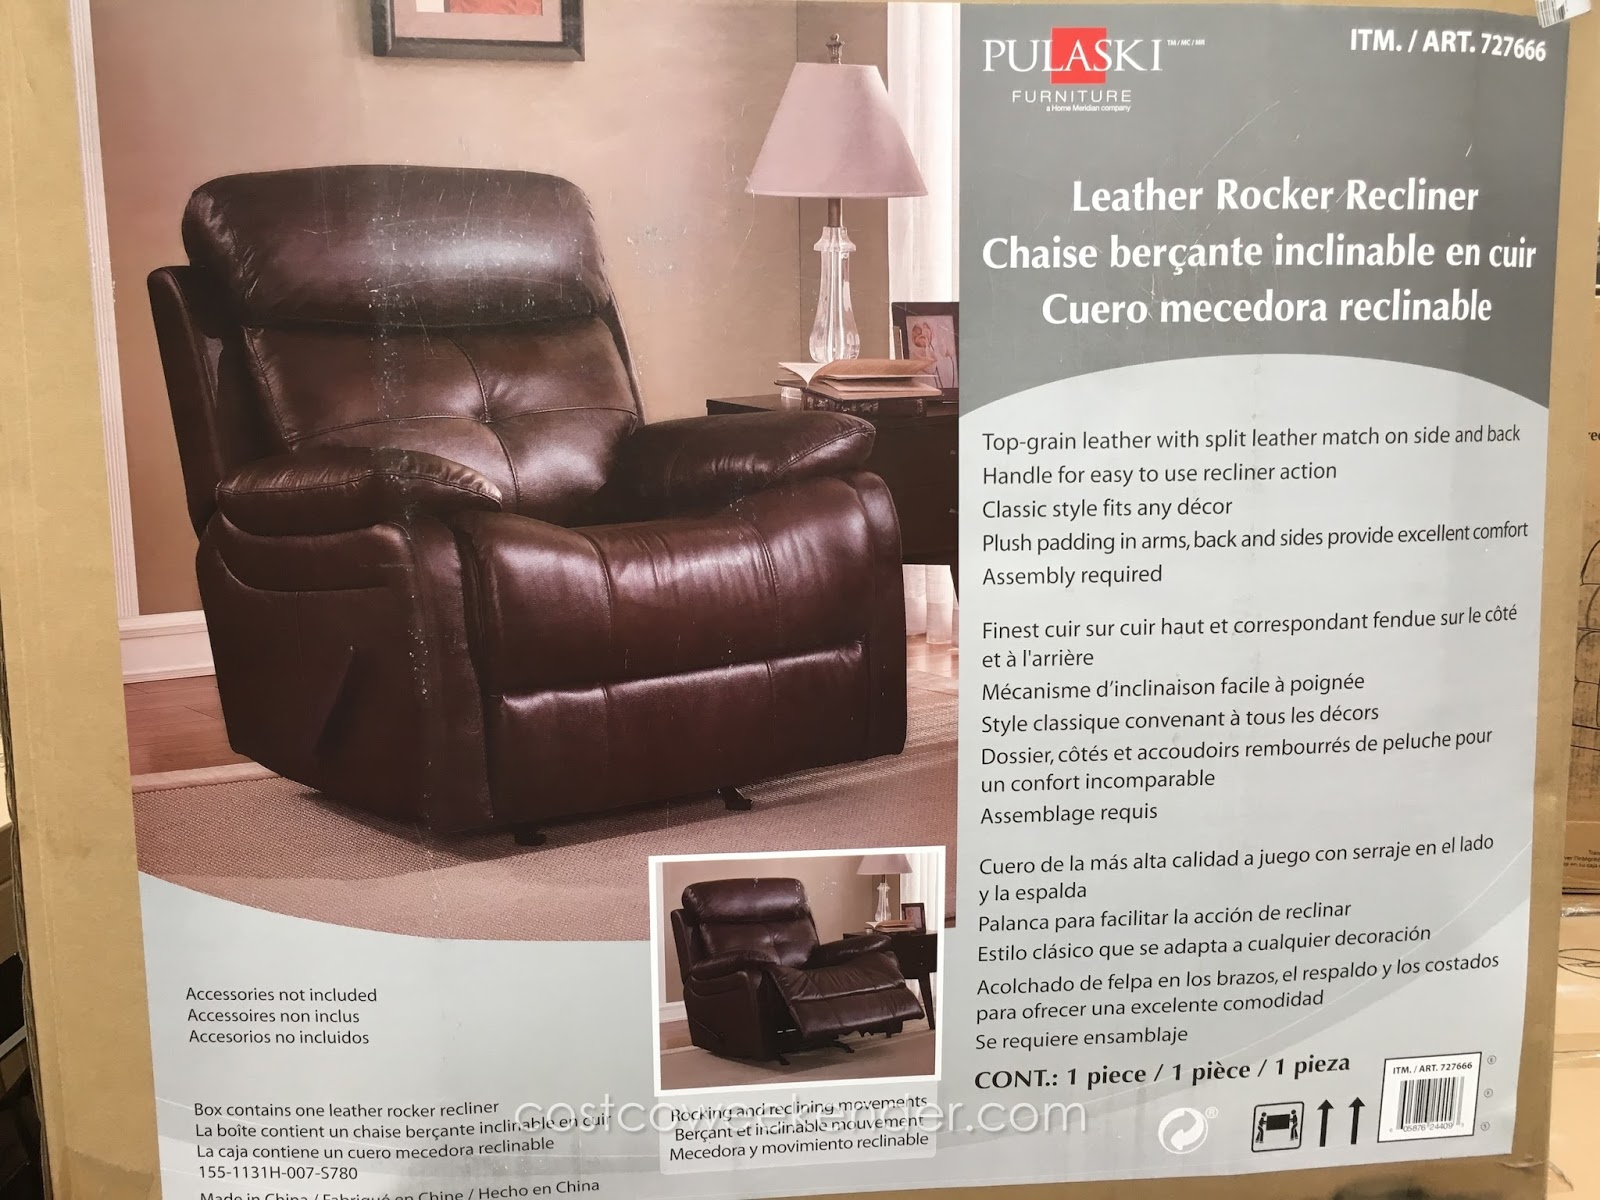 Pulaski Leather Rocker Recliner comfortable and practical : pulaski recliner - islam-shia.org